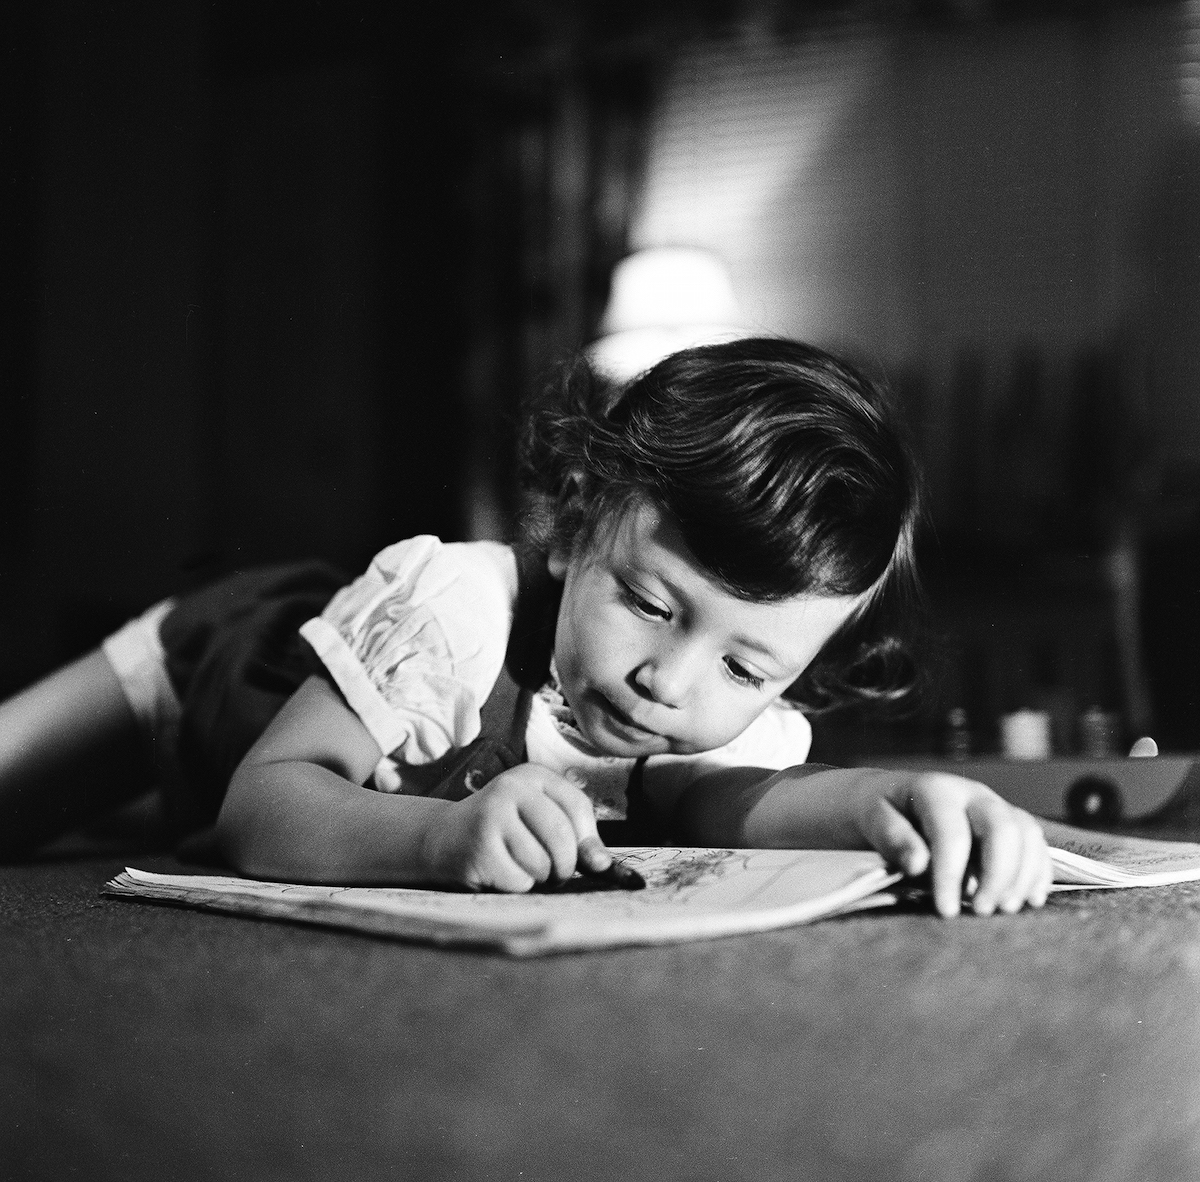 View of a young girl, filling in sketches in a coloring book, with crayon in hand, New York, 1948.